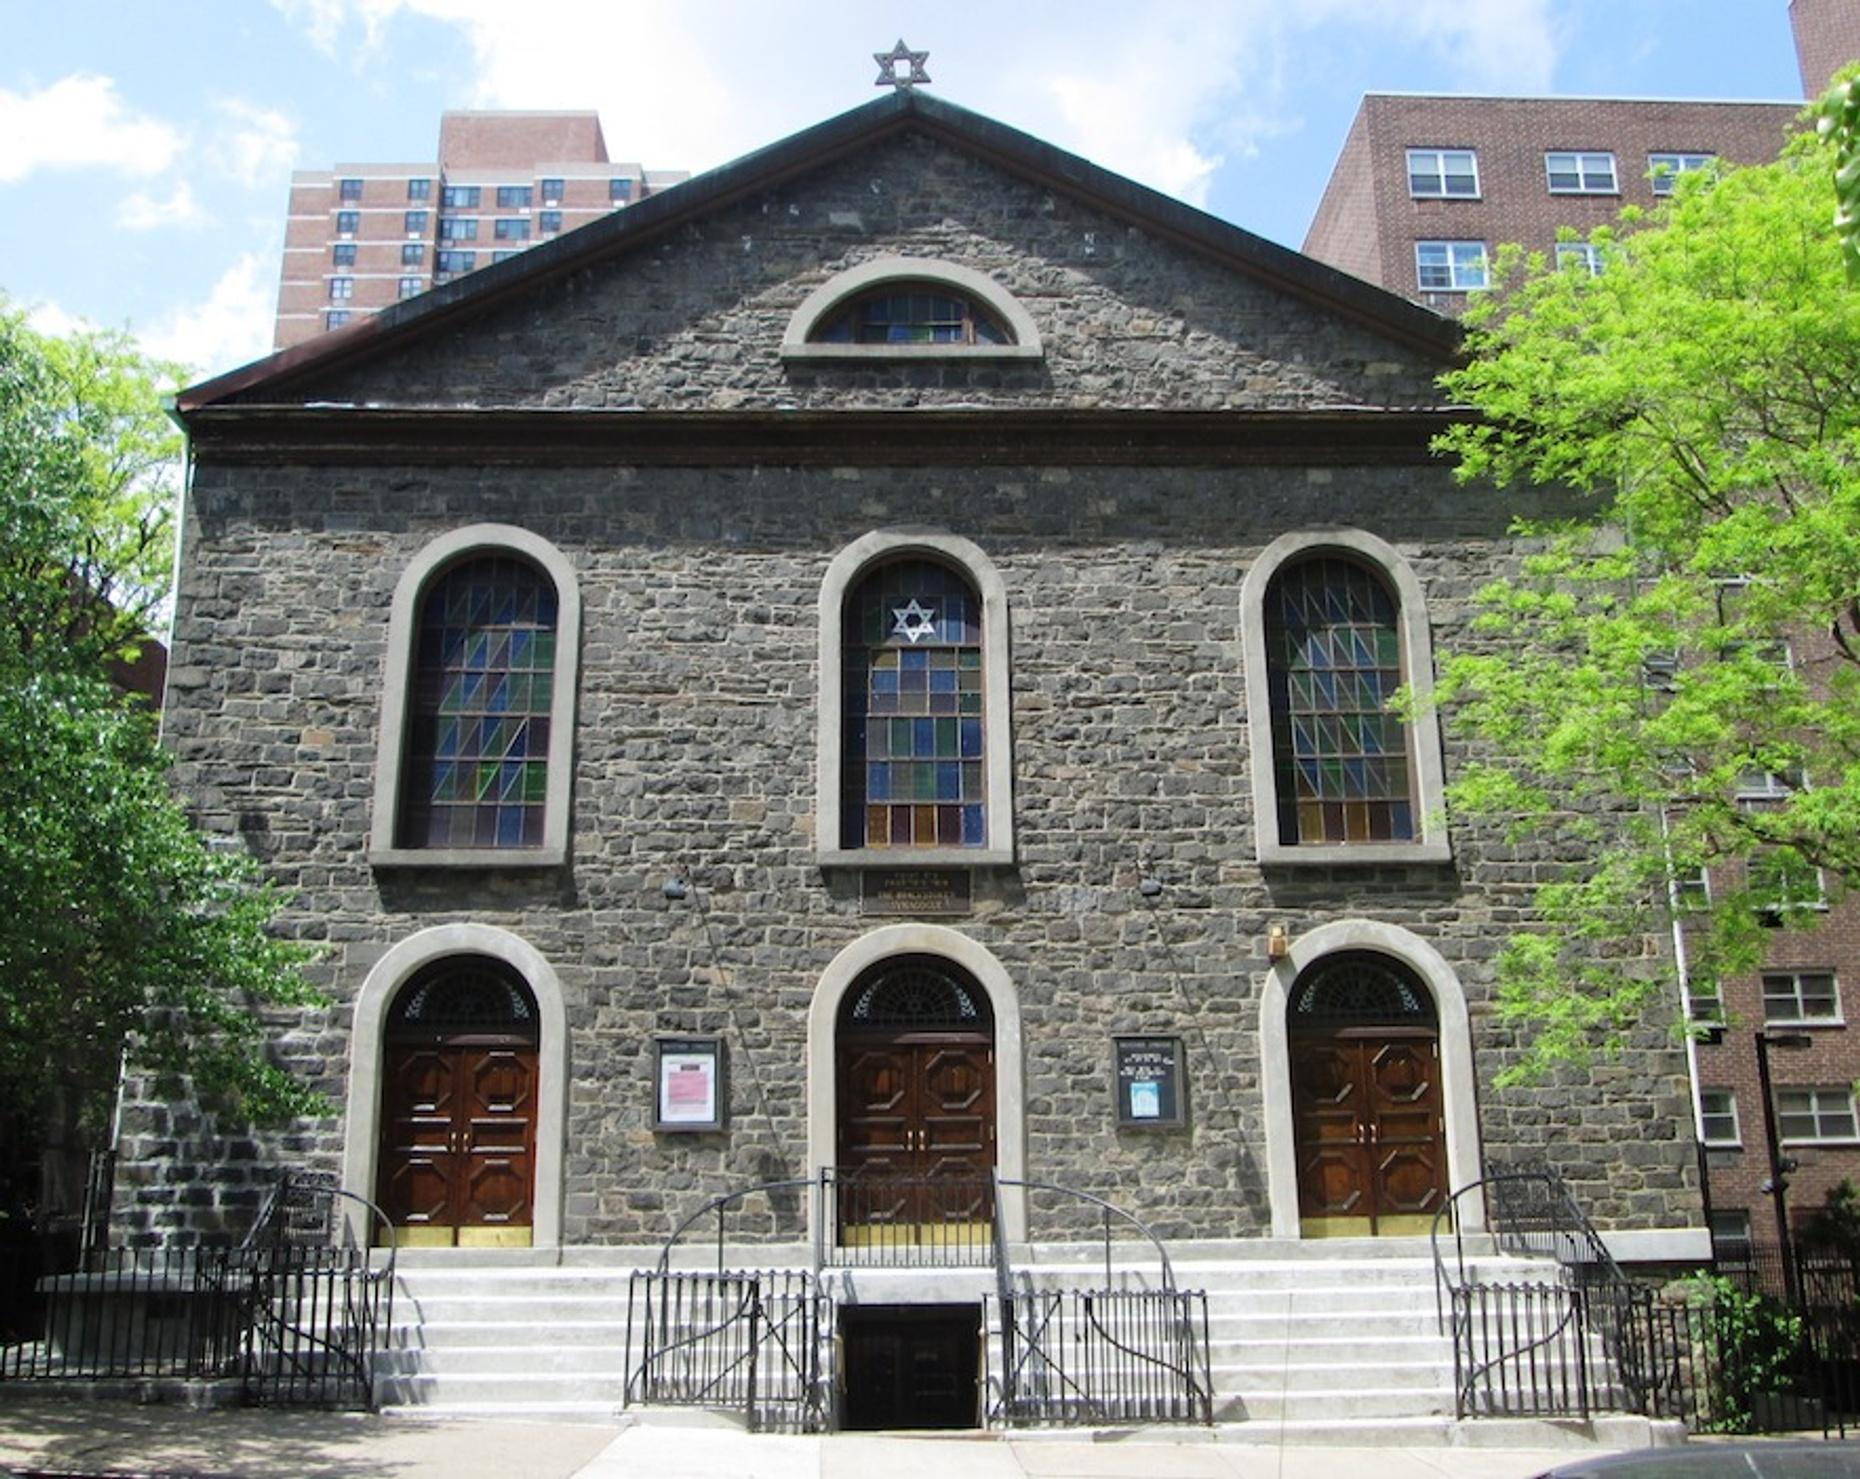 Tour of the Bialystoker Synagogue in the Lower East Side